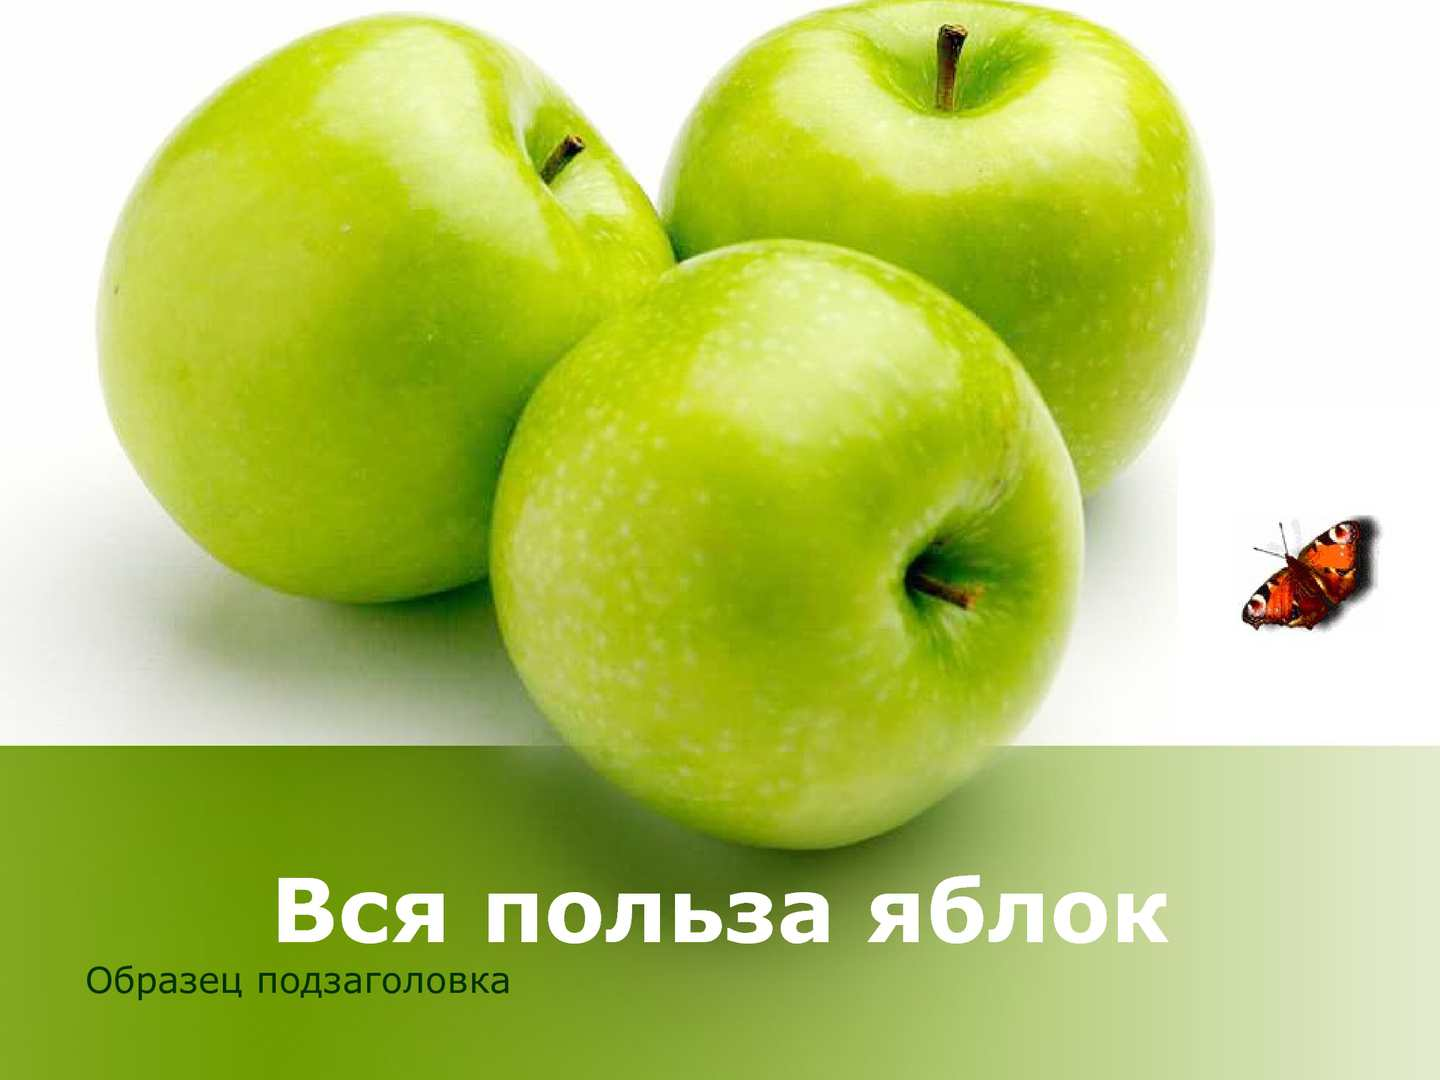 aims and objectives of apple